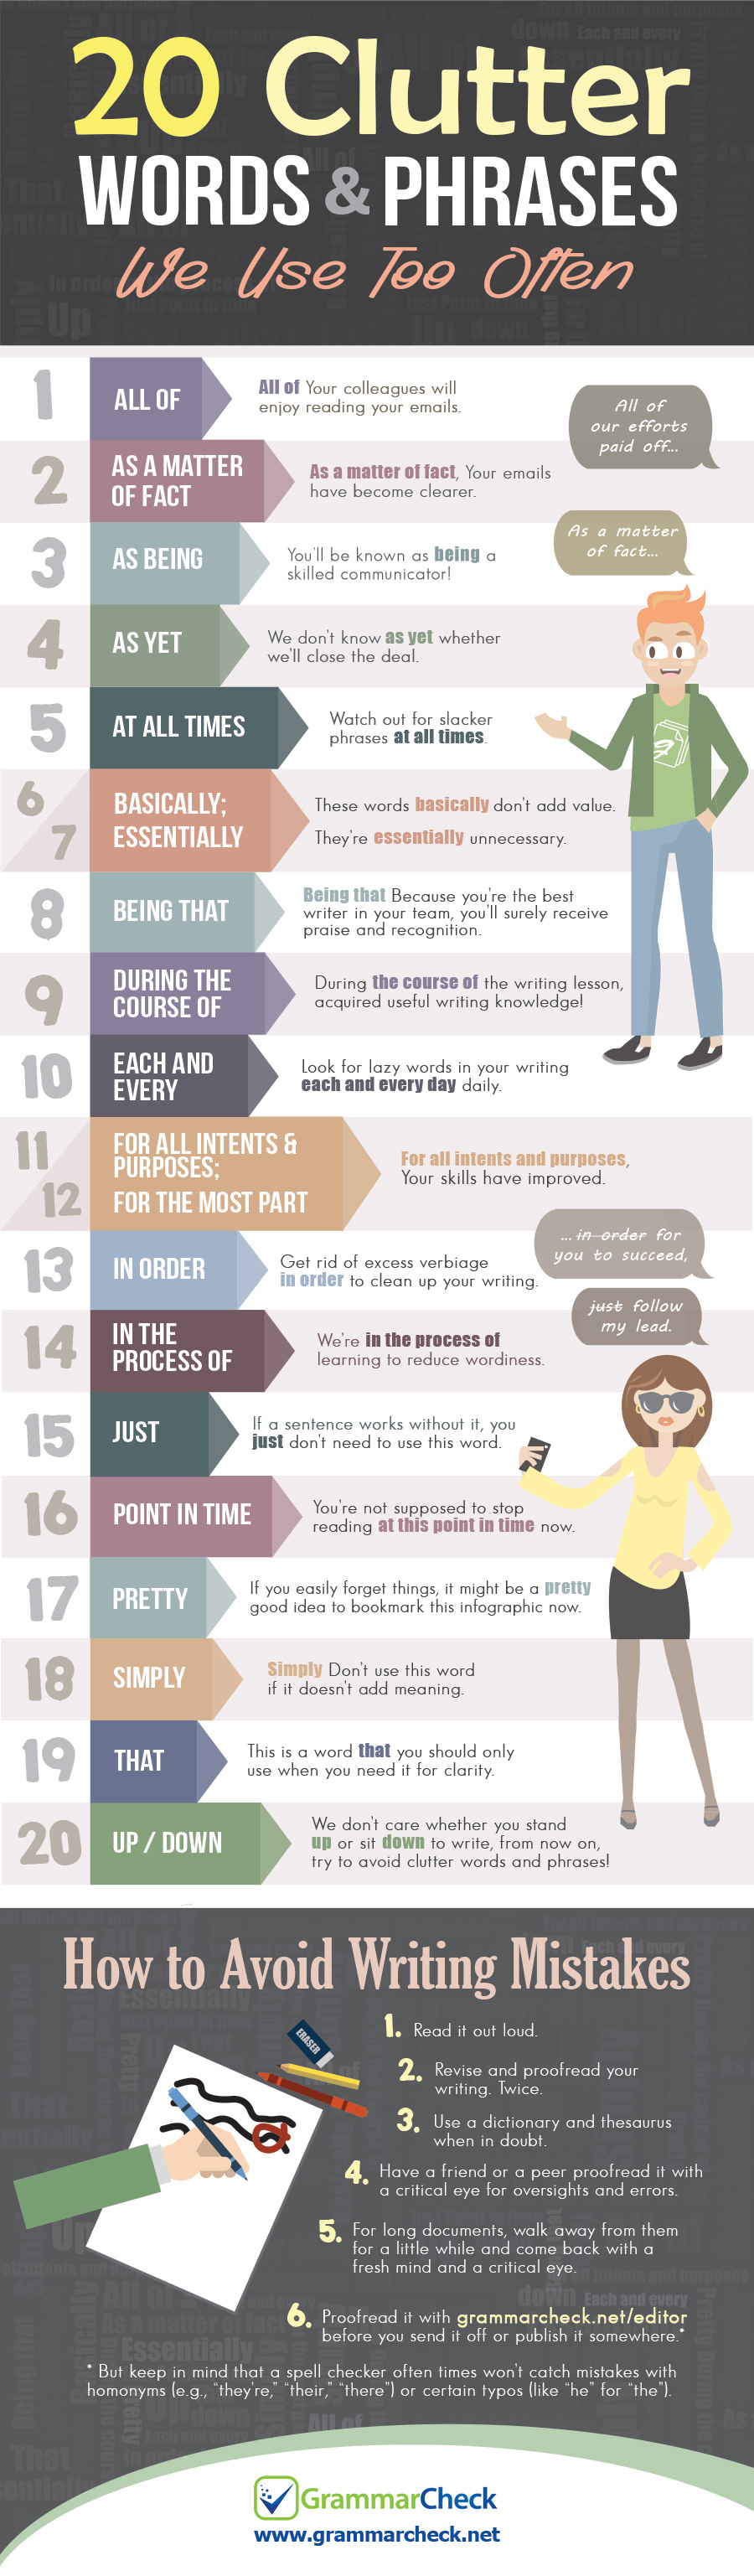 20 Clutter Words & Phrases to Avoid (Infographic)